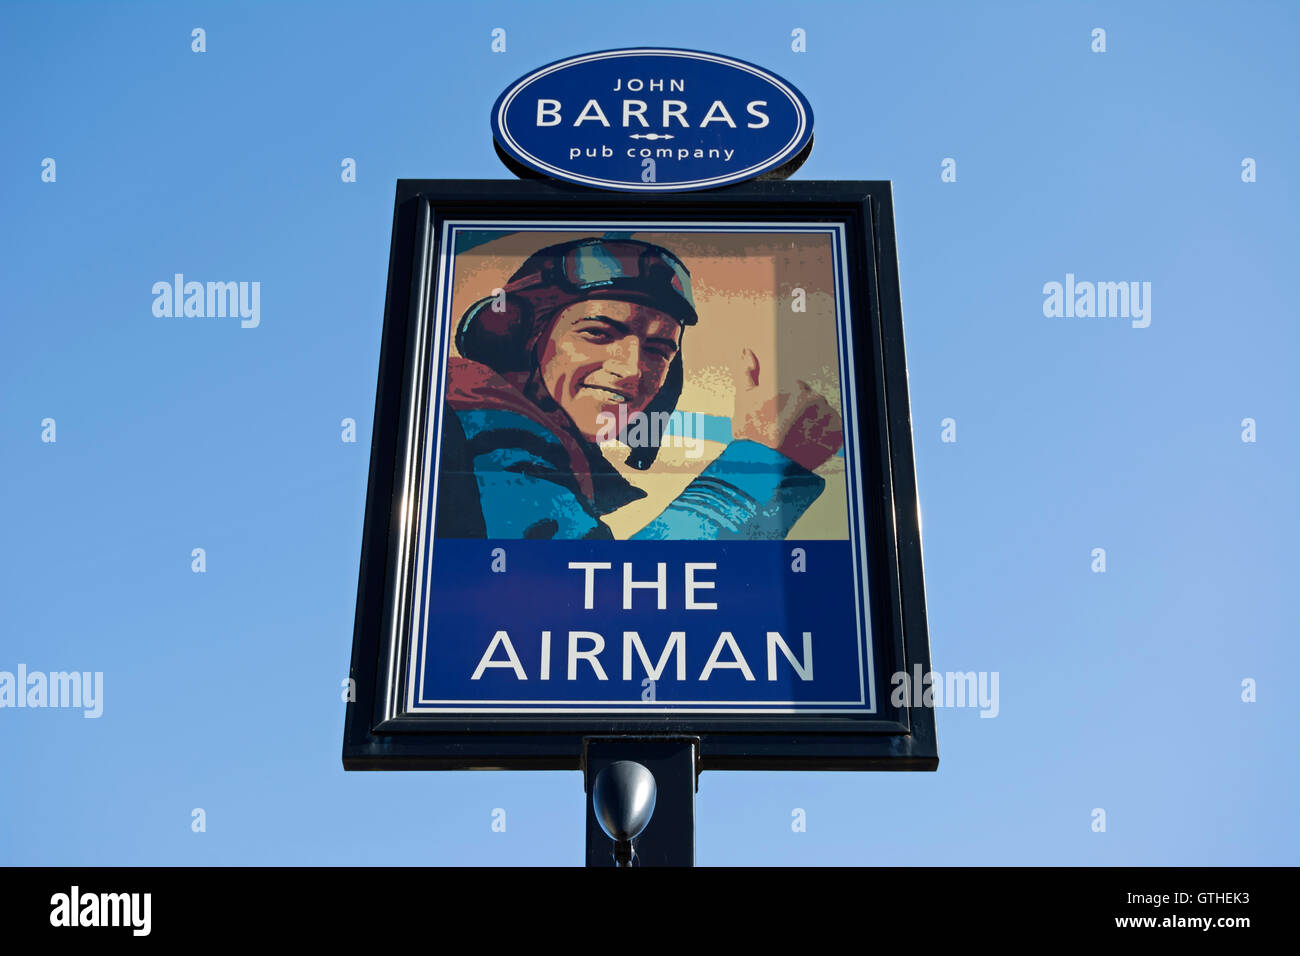 pub sign for the airman, near heathroww airport in feltham, middlesex, england - Stock Image